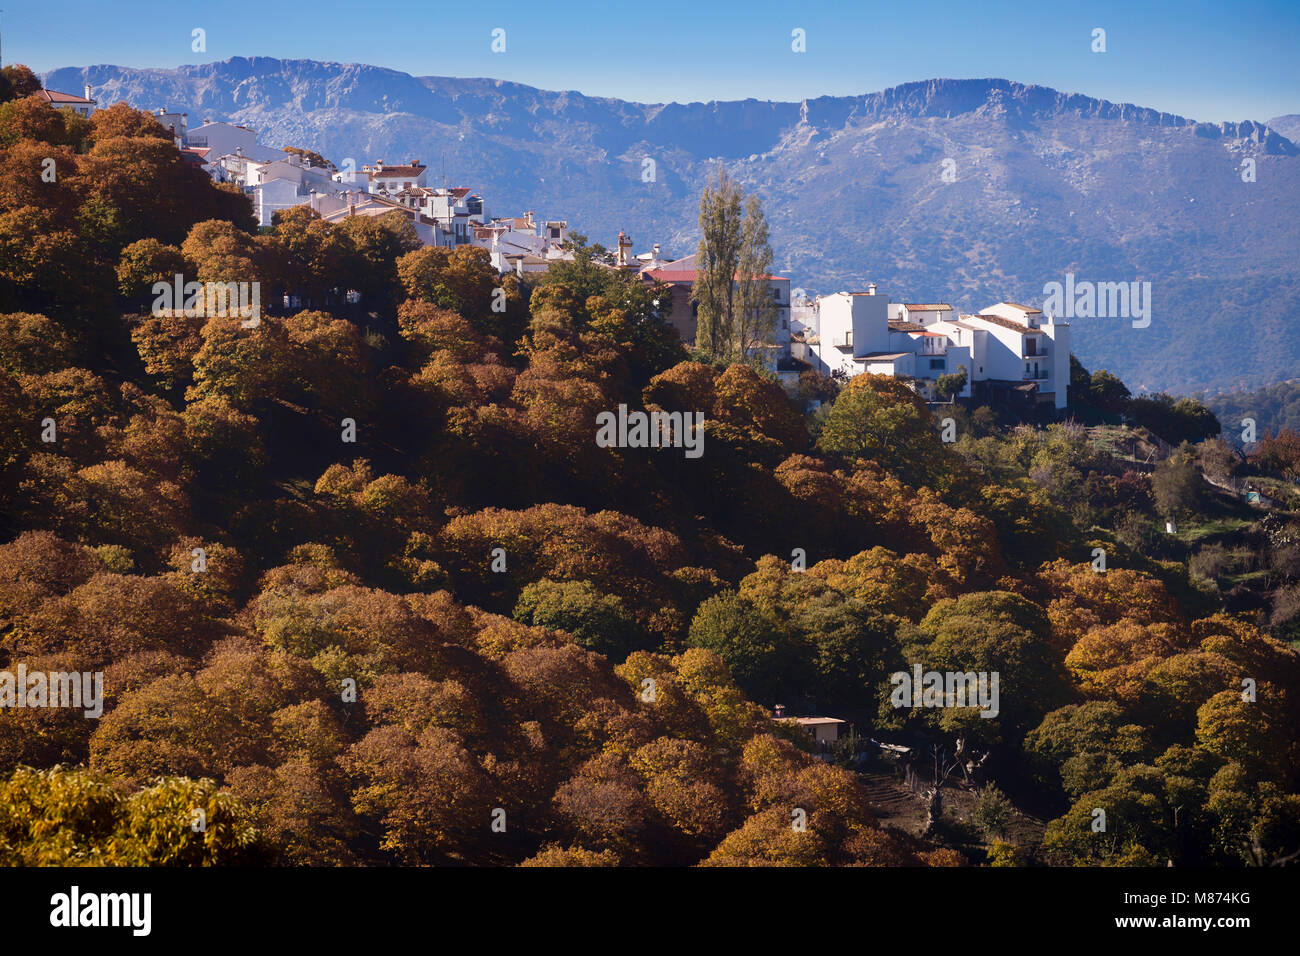 Pujerra, Malaga Province, Spain.  Autumn in the chestnut forests of the Valle del Genal in the Serranía de - Stock Image